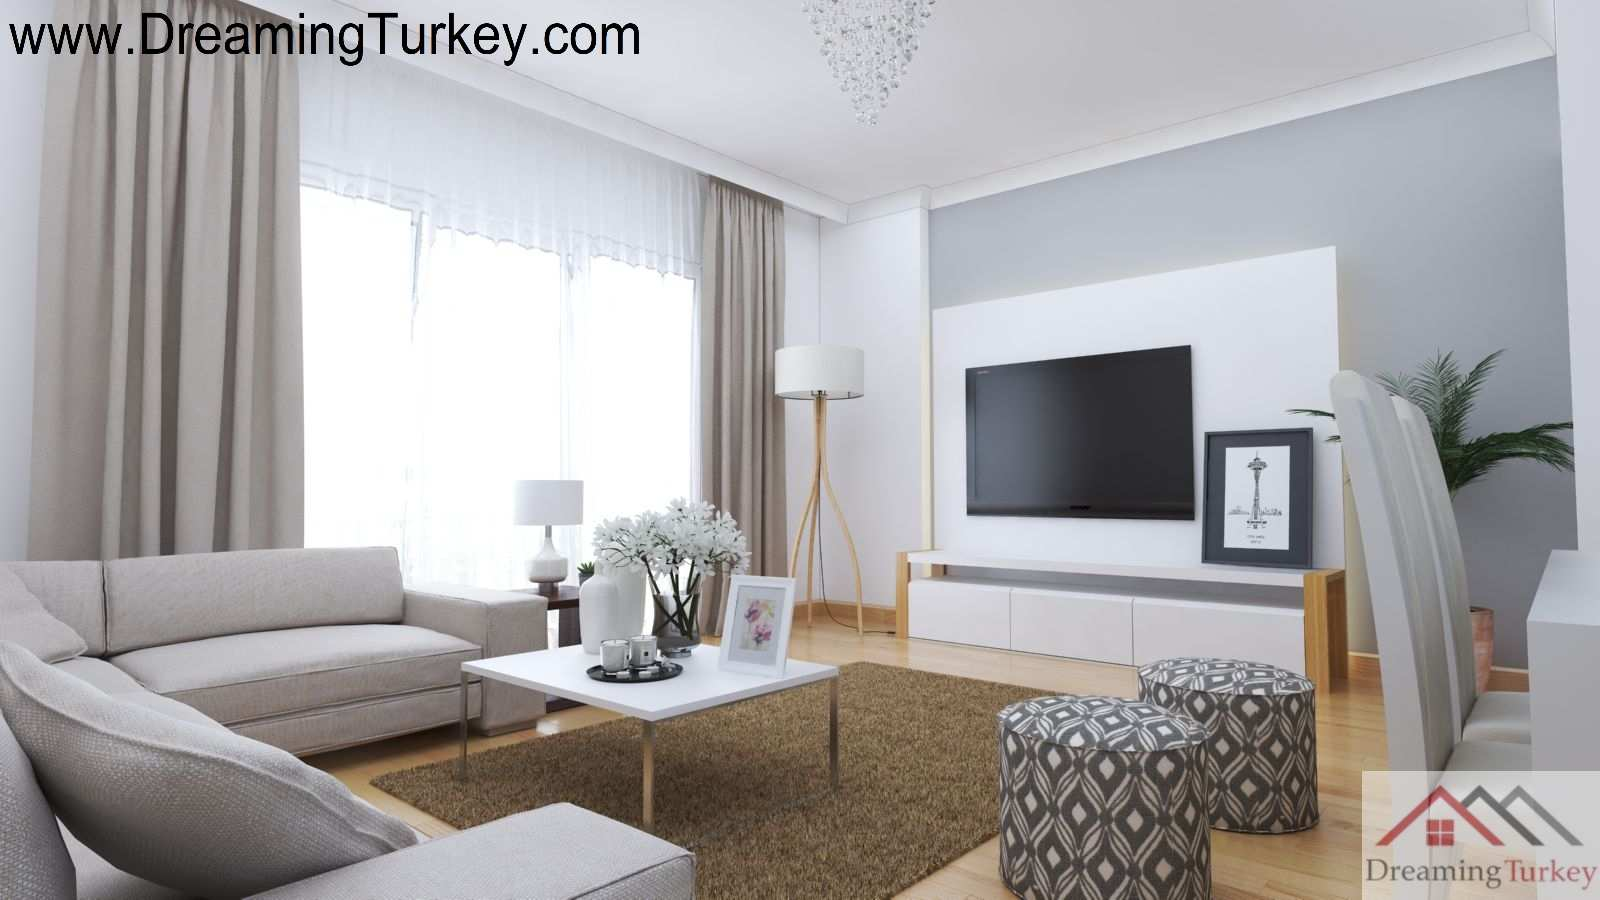 3-Bedroom Duplex Villa with a Sea View in Istanbul